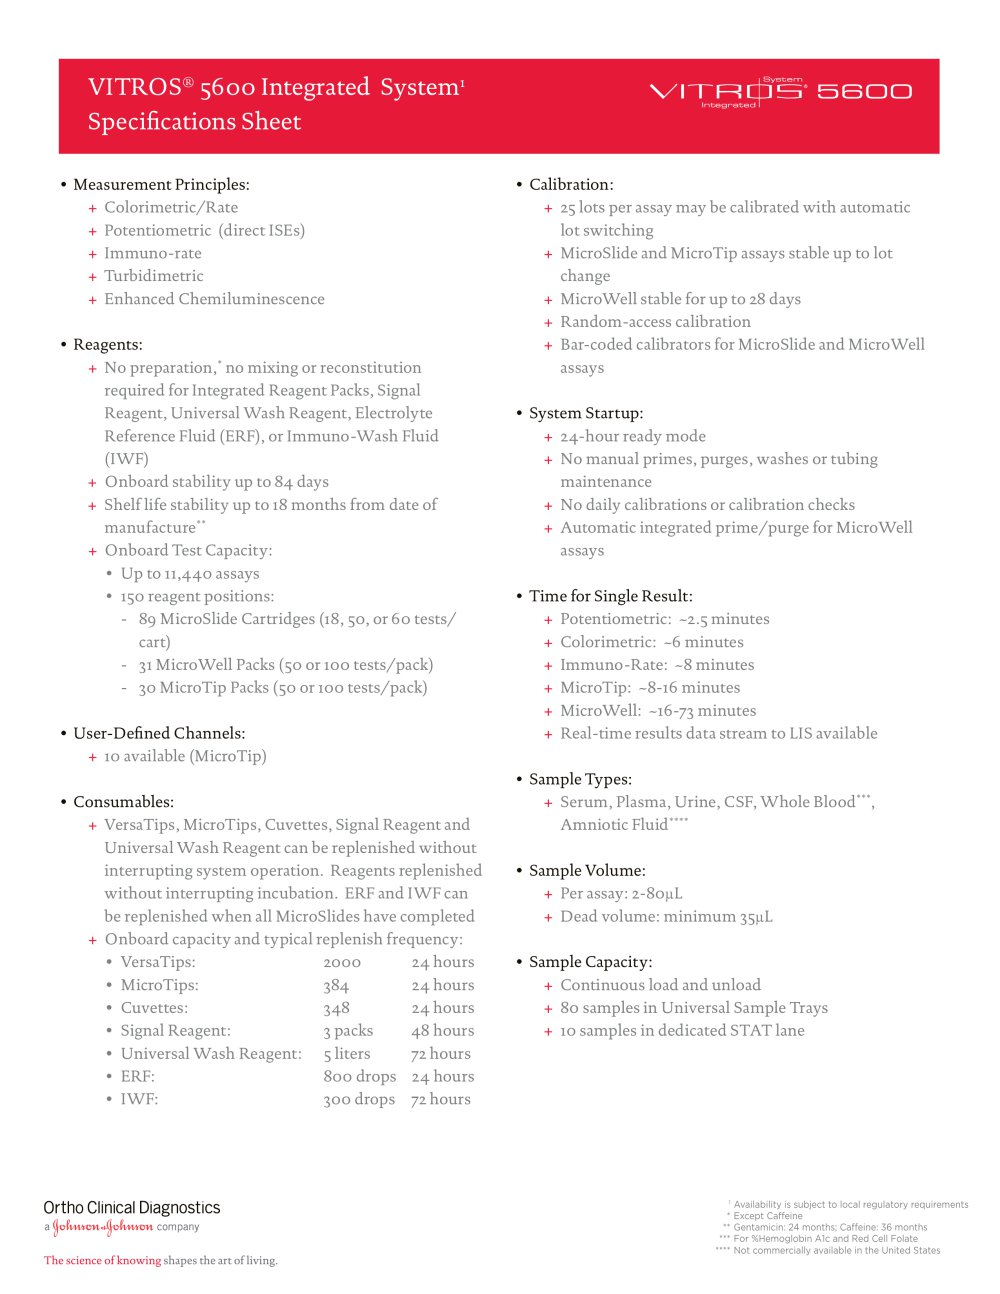 VITROS® 5600: Specifications Sheet - 1 / 2 Pages